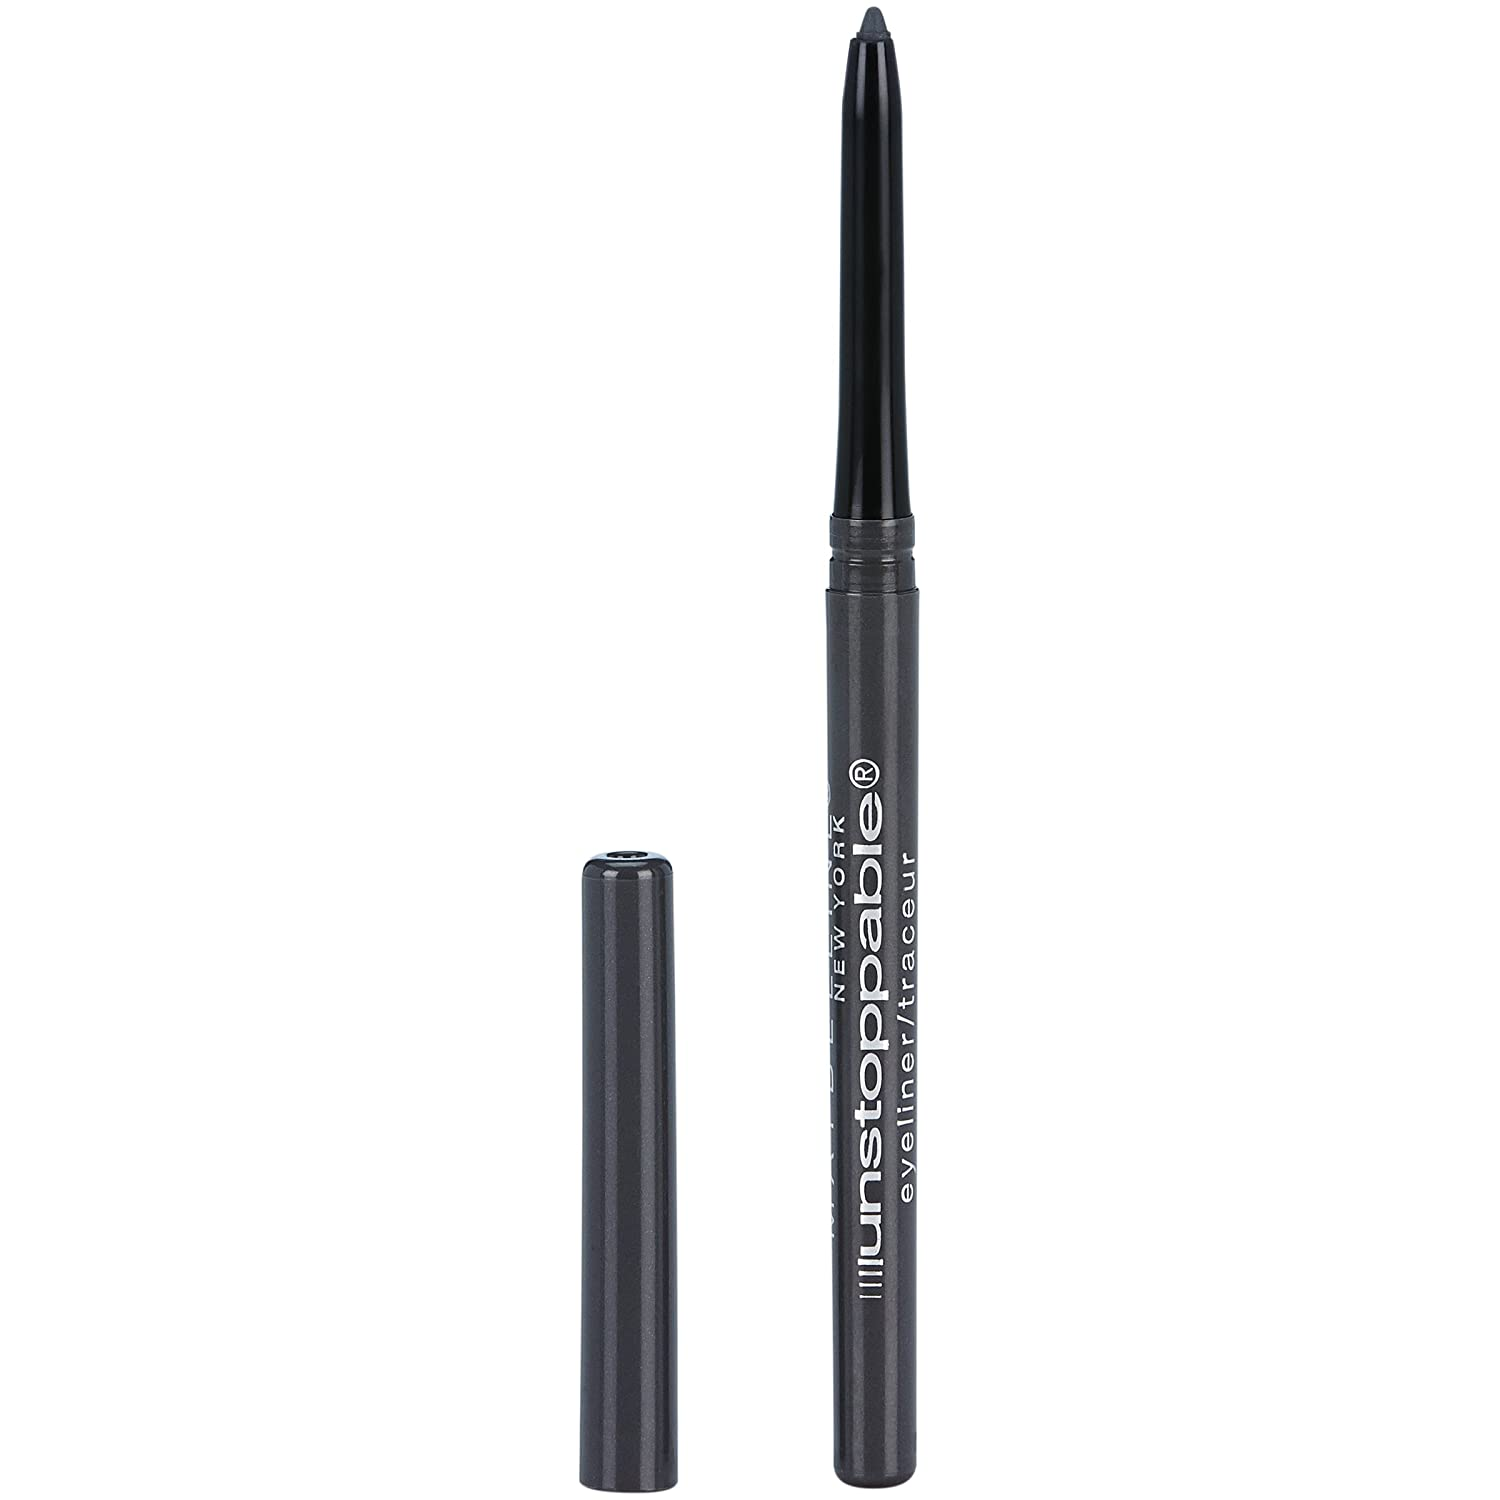 Maybelline Unstoppable Eyeliner - Pewter - 2 Pack